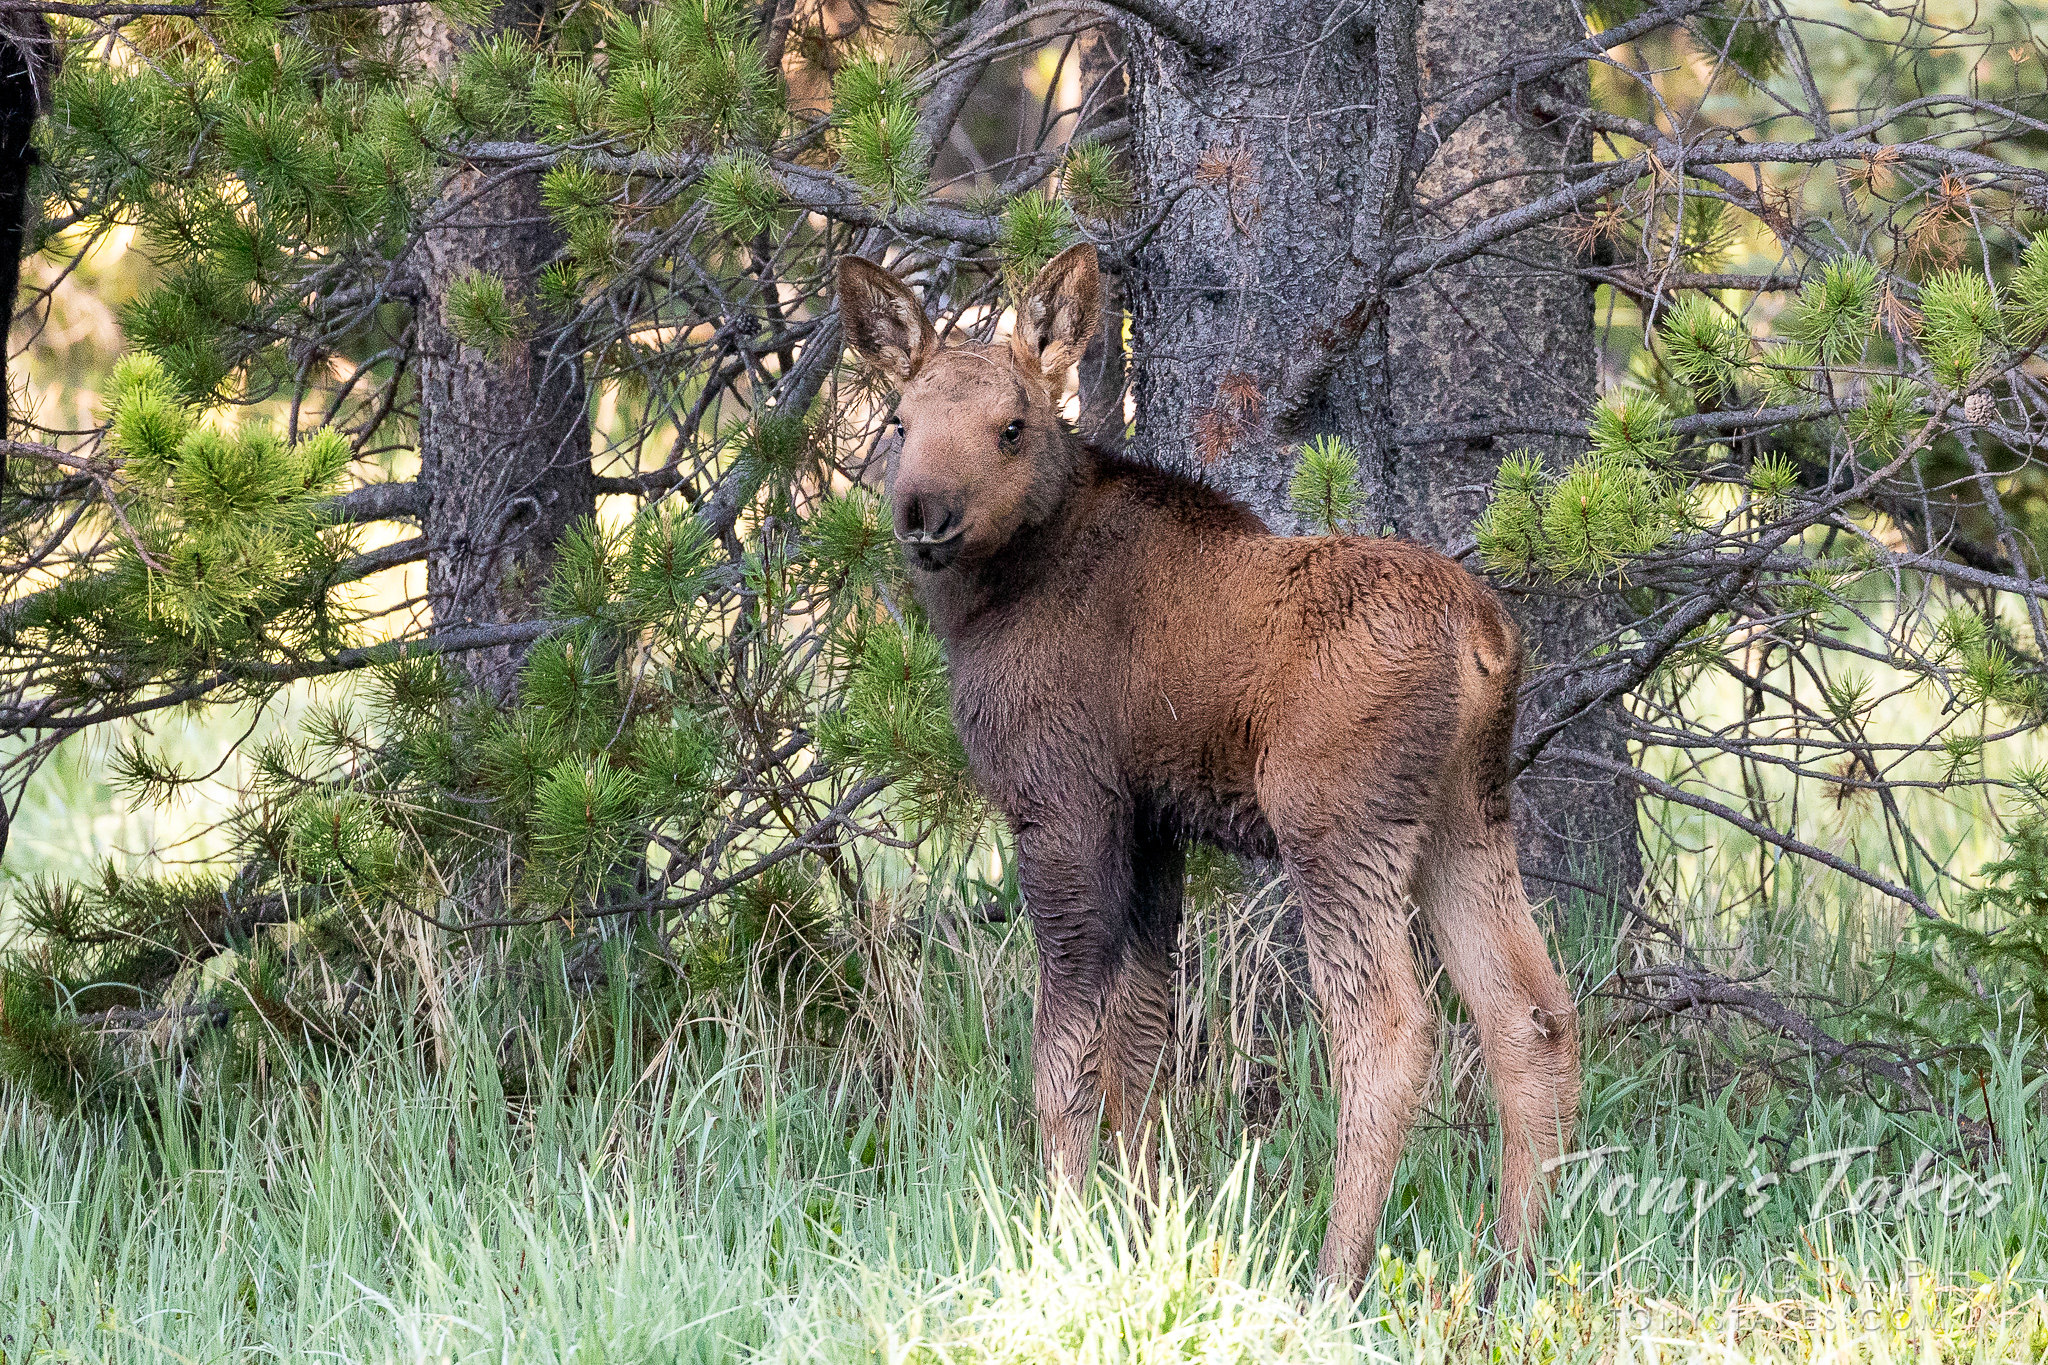 A moose calf keeps watch in Rocky Mountain National Park, Colorado. (© Tony's Takes)